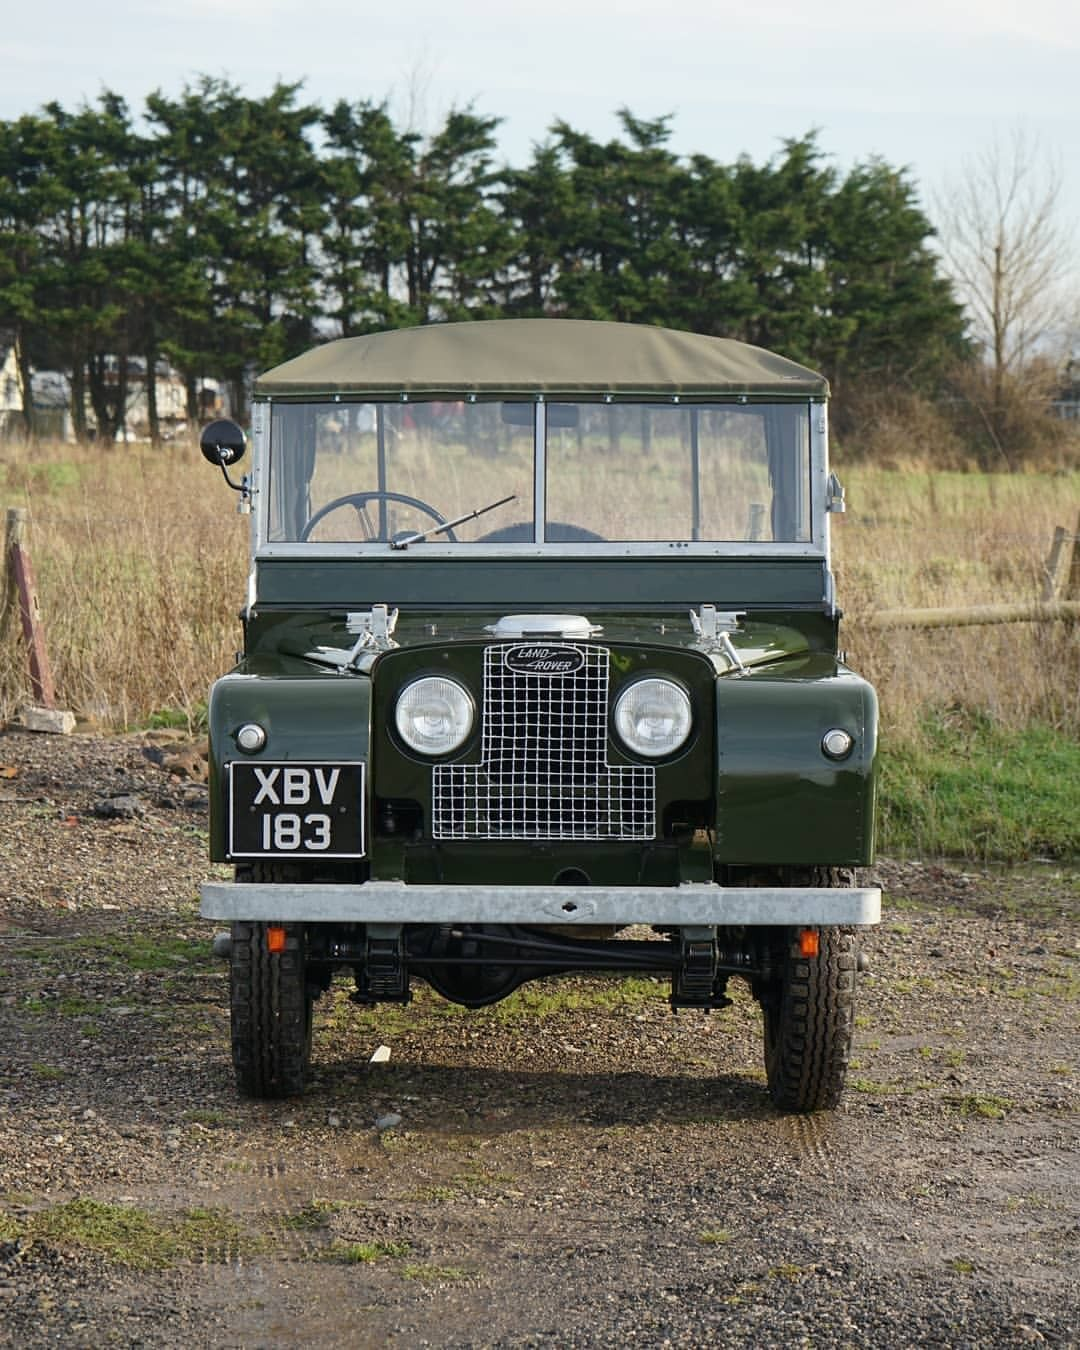 Land Rovers Classic Rovers Classic Landrover Klassisch Land Rovers Classique Land Rovers Clasico Land Rover In 2020 Land Rover Sport Land Rover Classic Jeeps